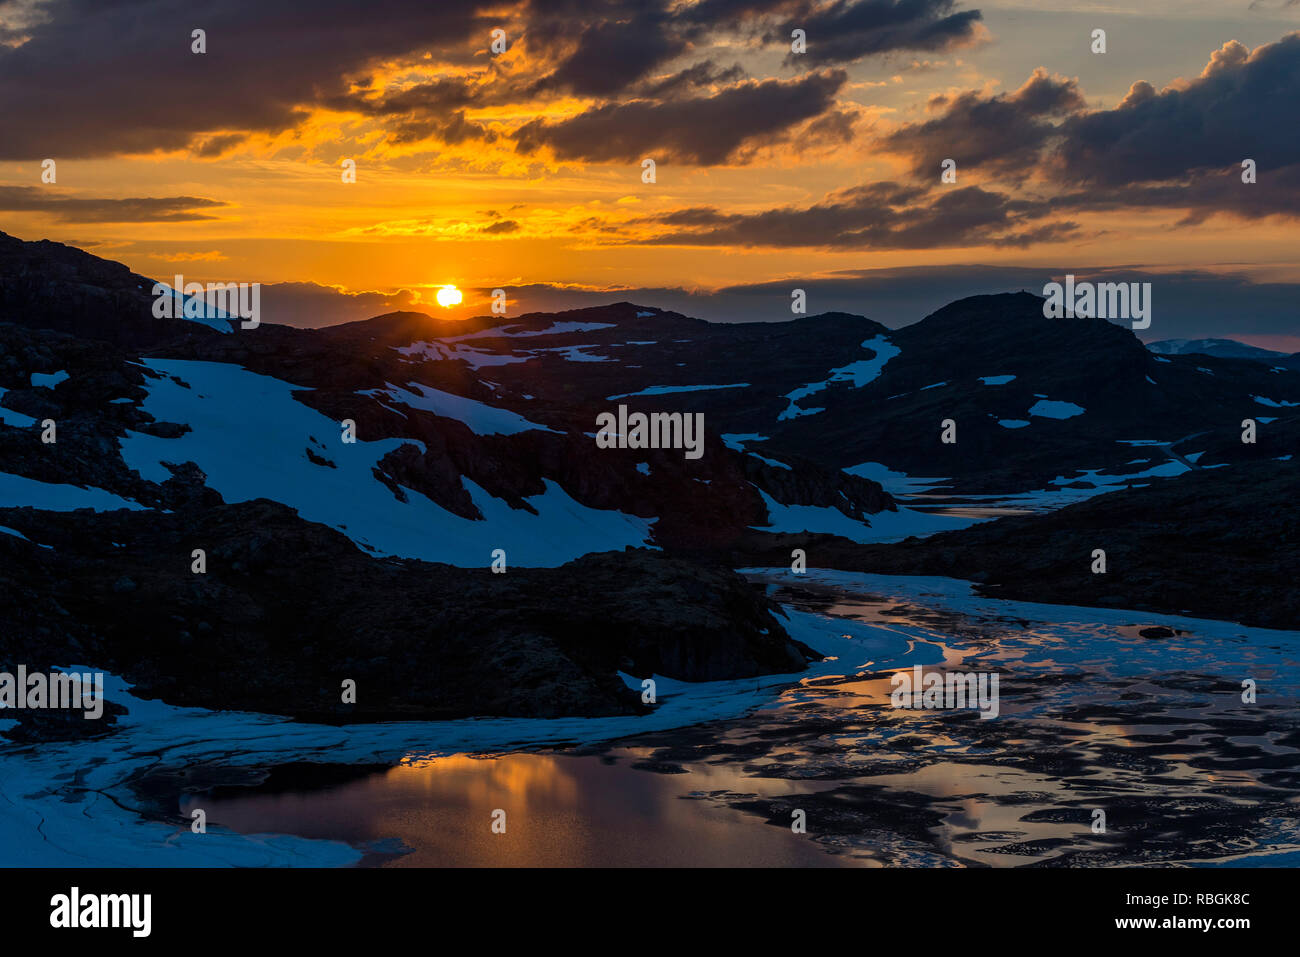 The spring sunset setting the mountain landscape with a melting lake in the valley. Norway, Aurlandsfjellet. - Stock Image